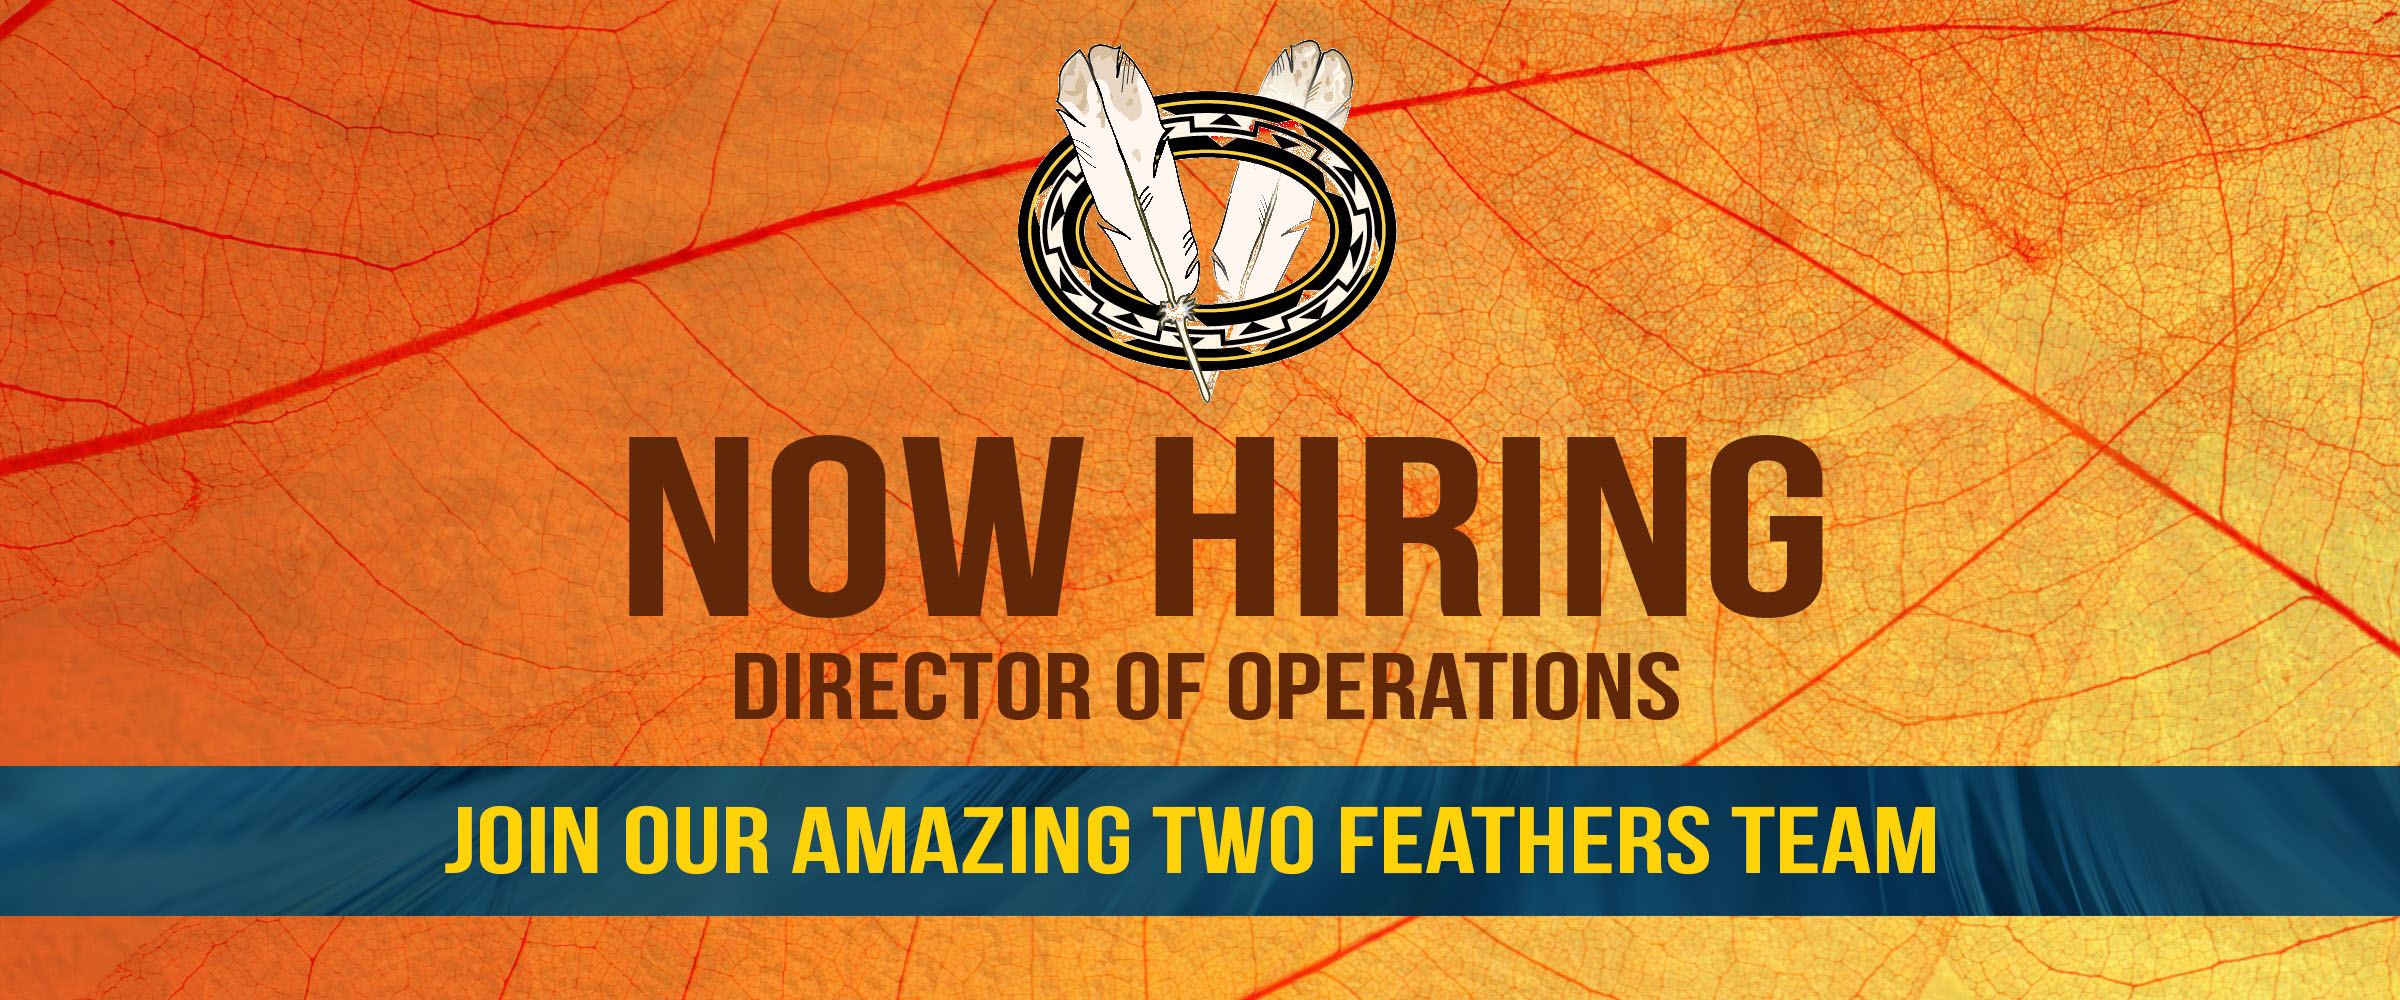 Now Hiring - Director of Operations